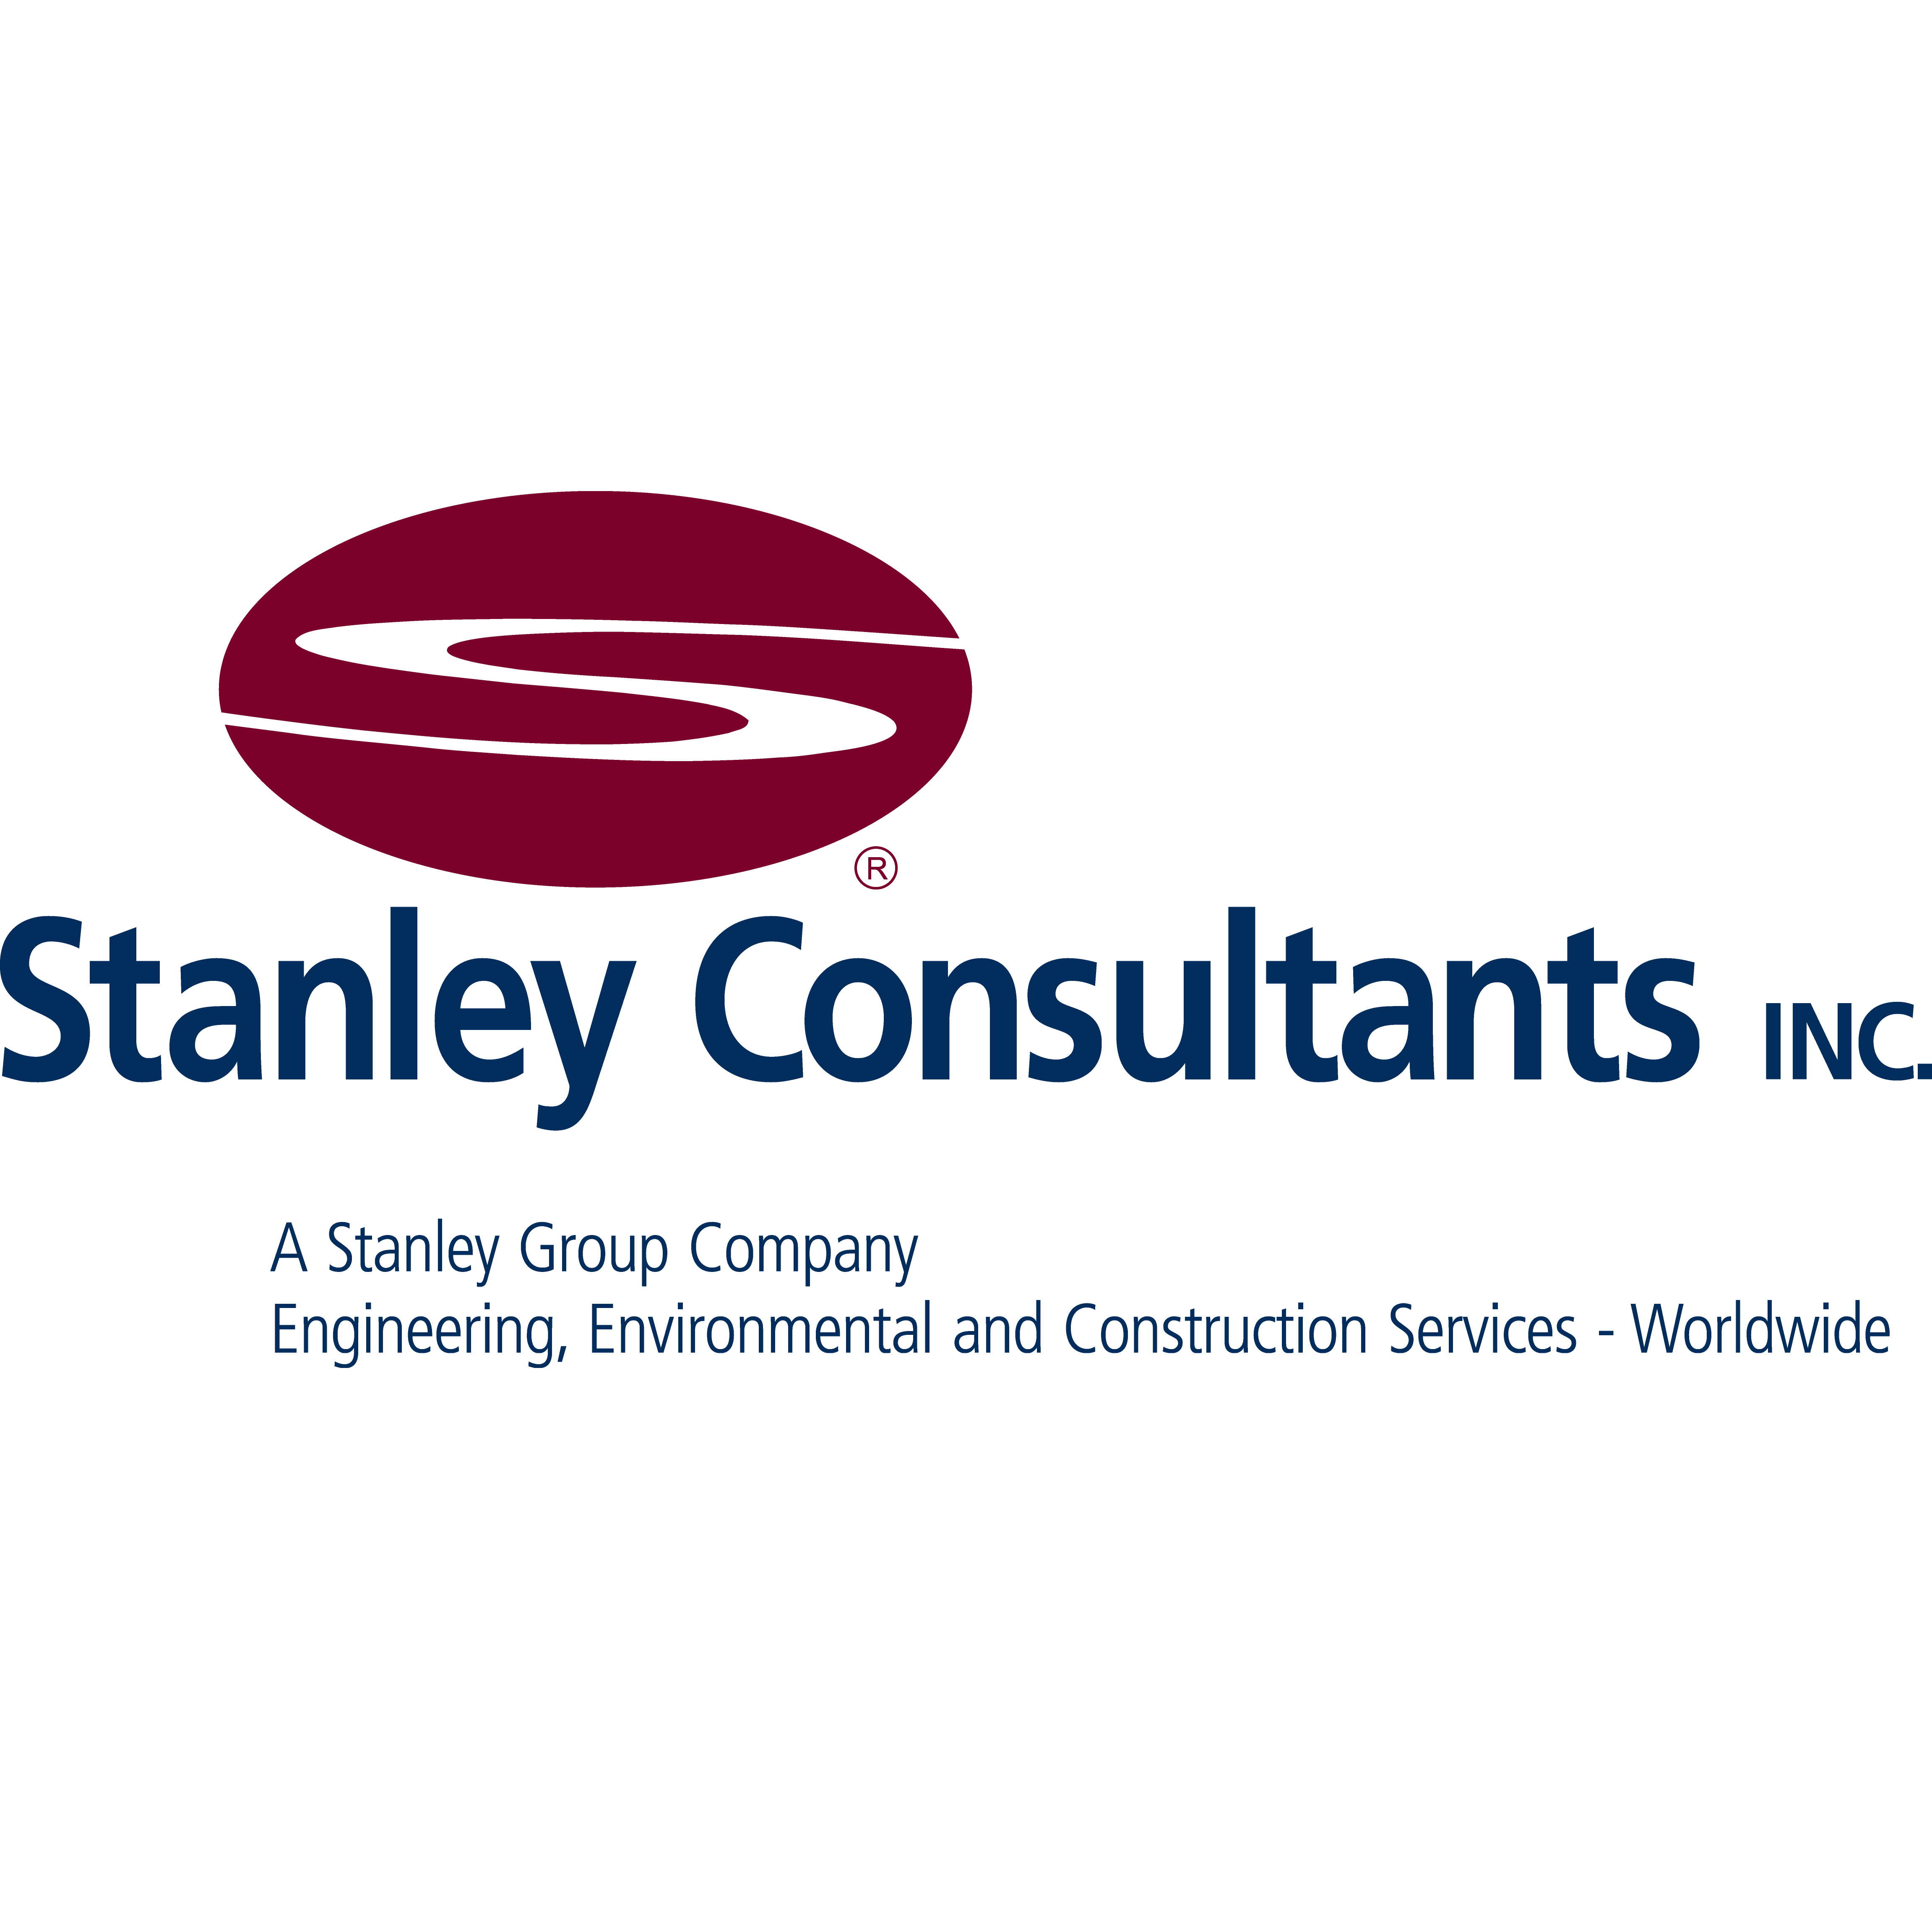 Stanley Consultants copy